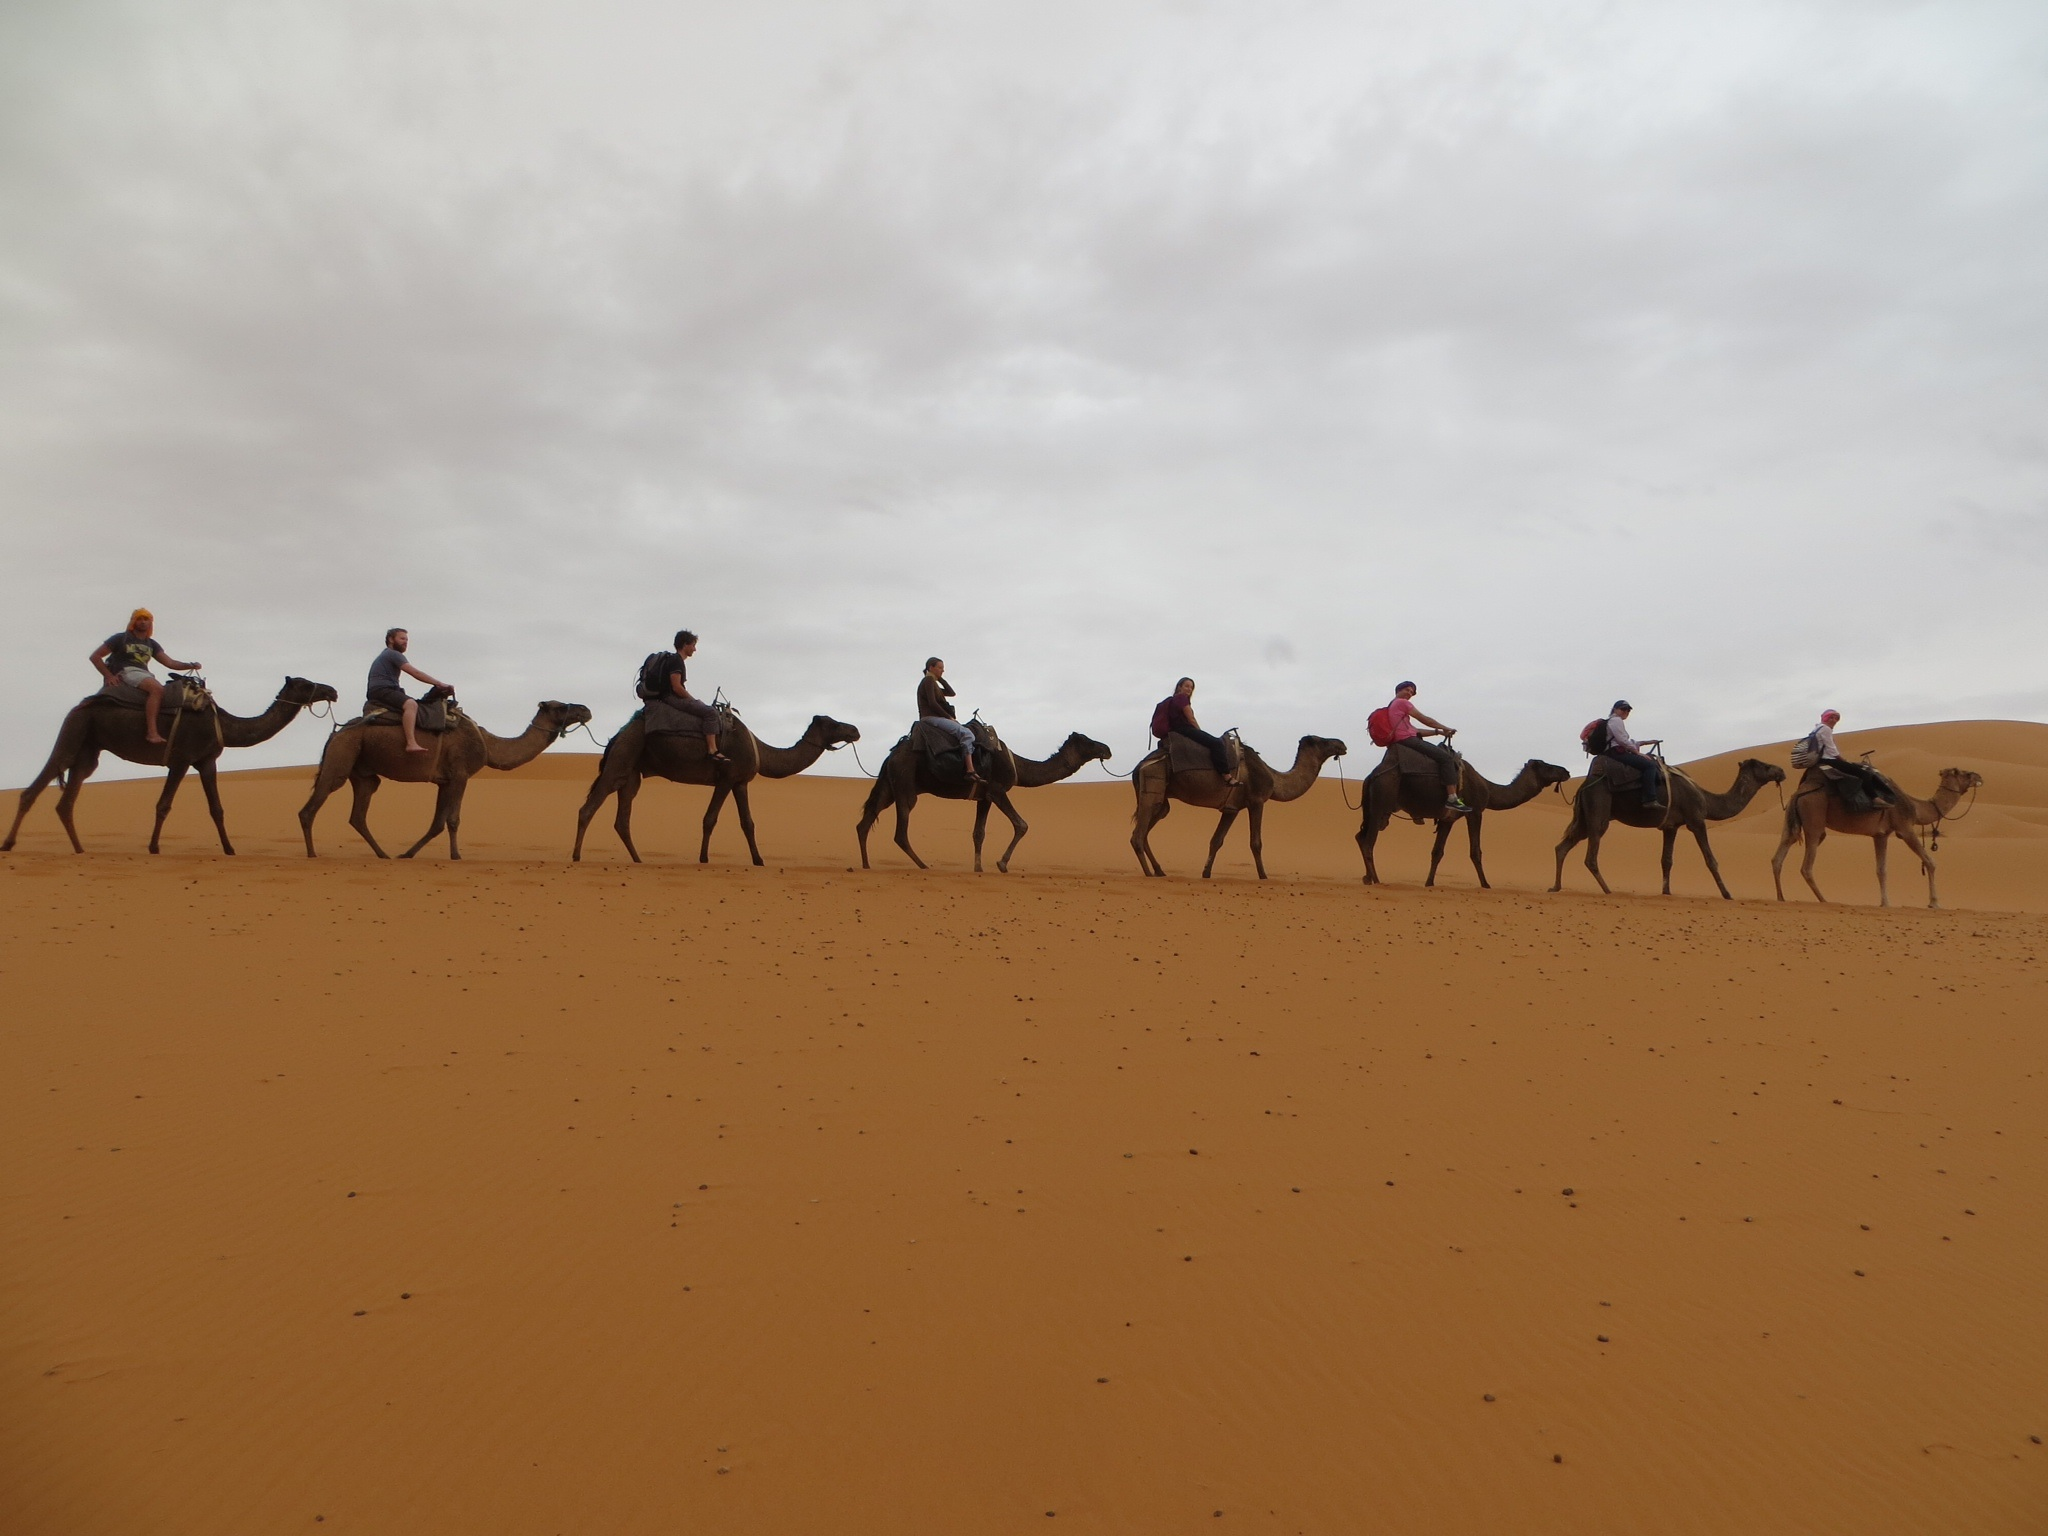 Awesome Camels Caravan Stock Photos Amp Camels Caravan Stock Images  Alamy